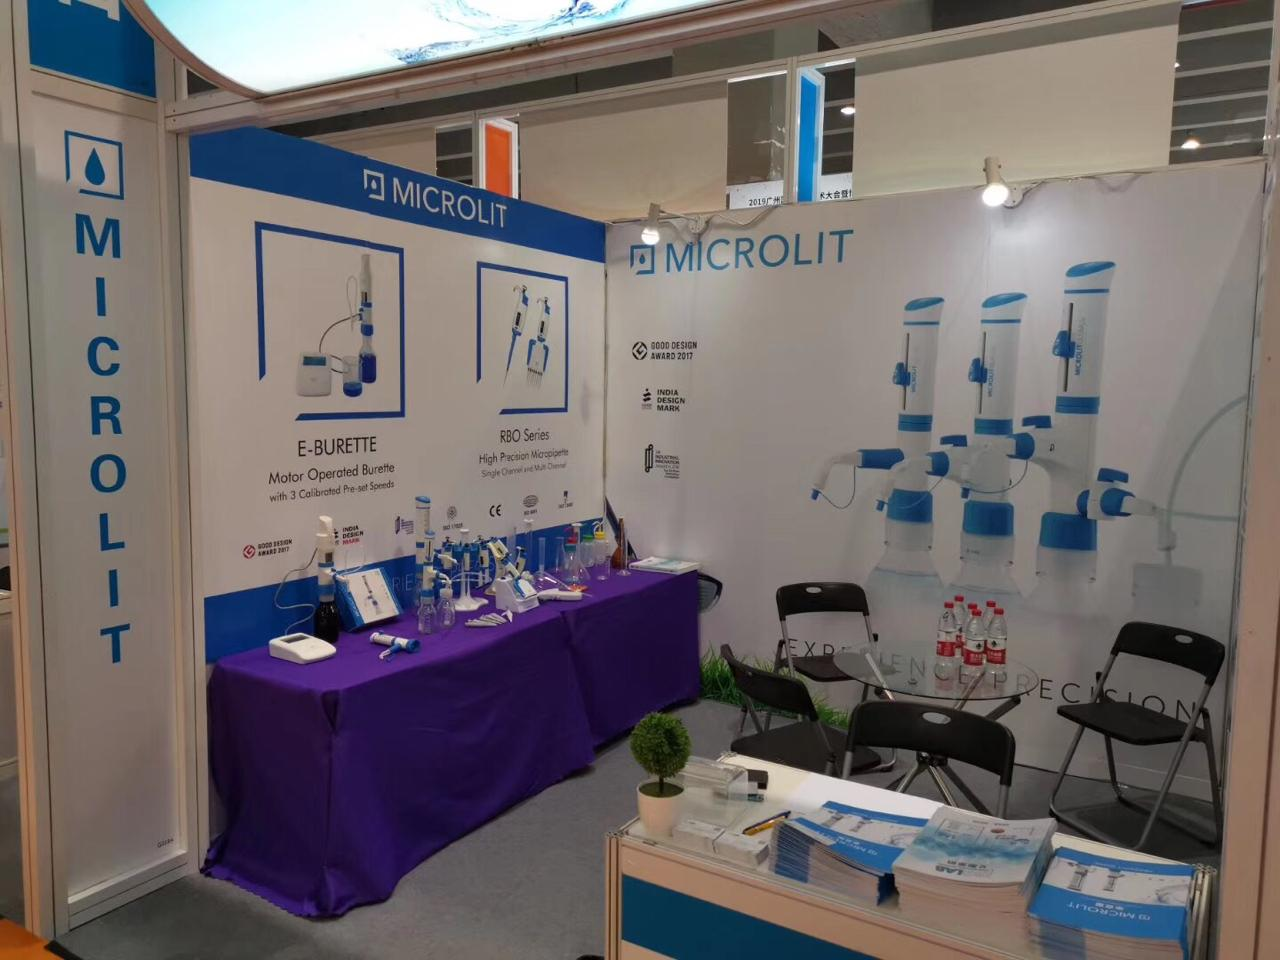 Guangzhou International Bio-Technology Expo 2019, China